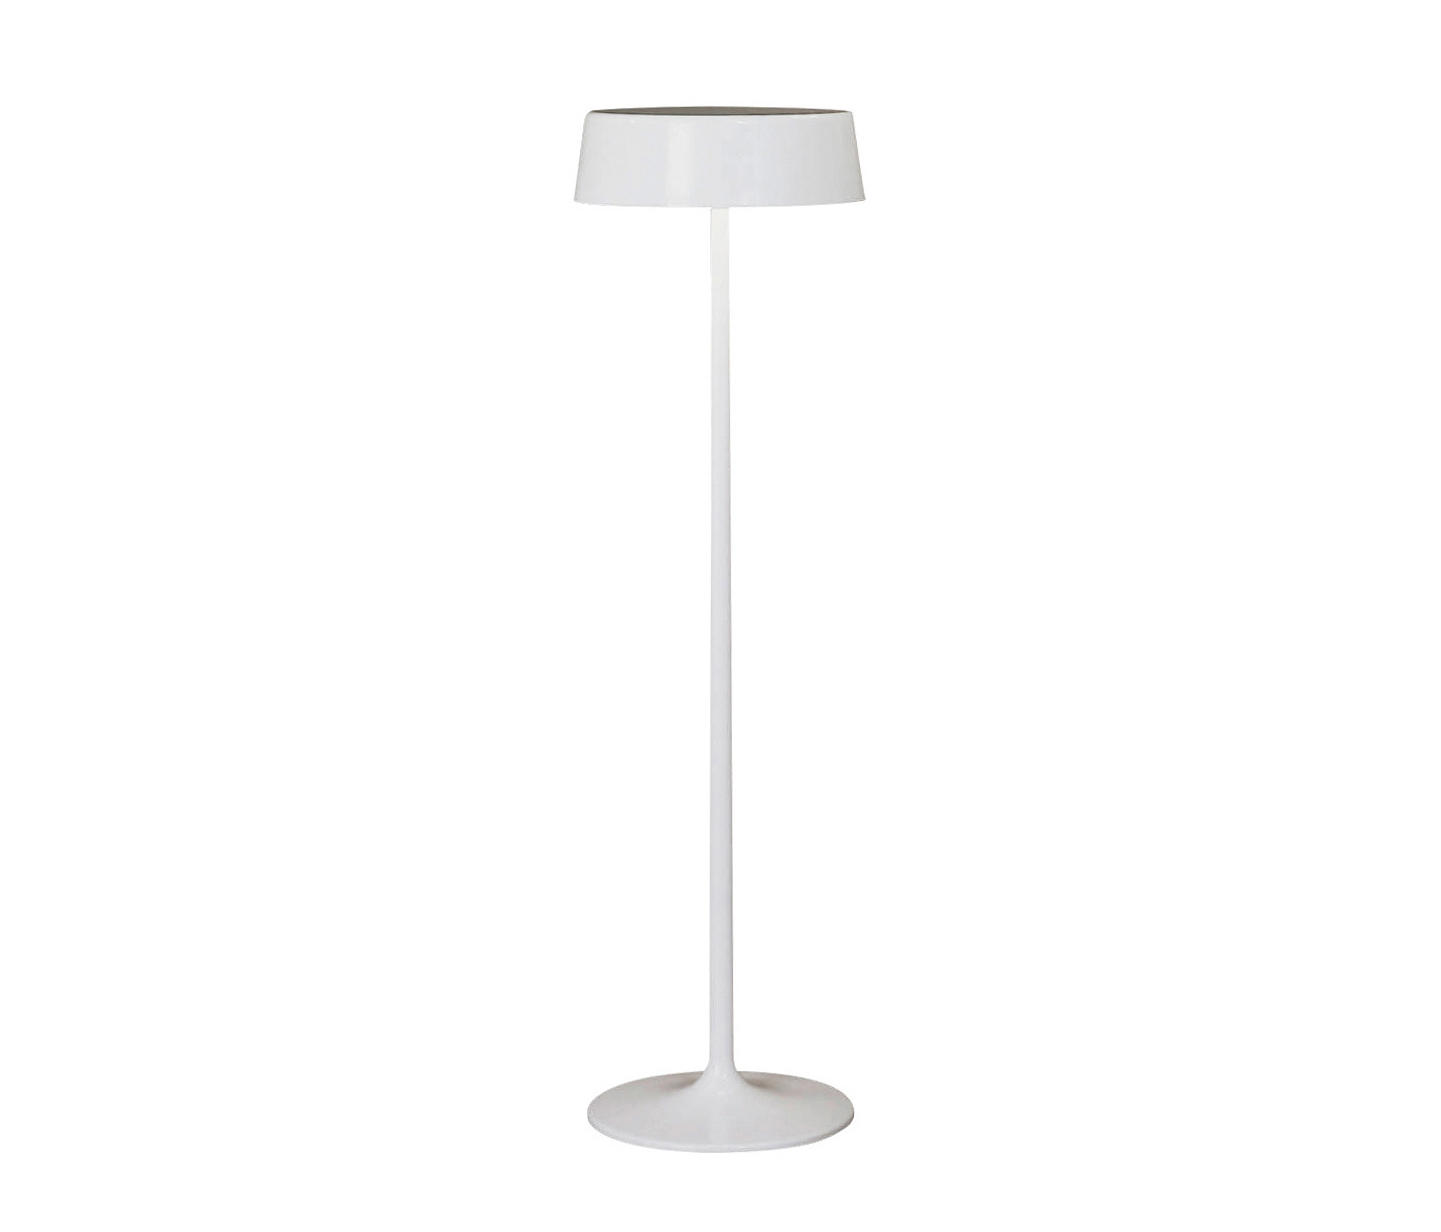 China low floor lamp general lighting from penta architonic china low floor lamp by penta general lighting mozeypictures